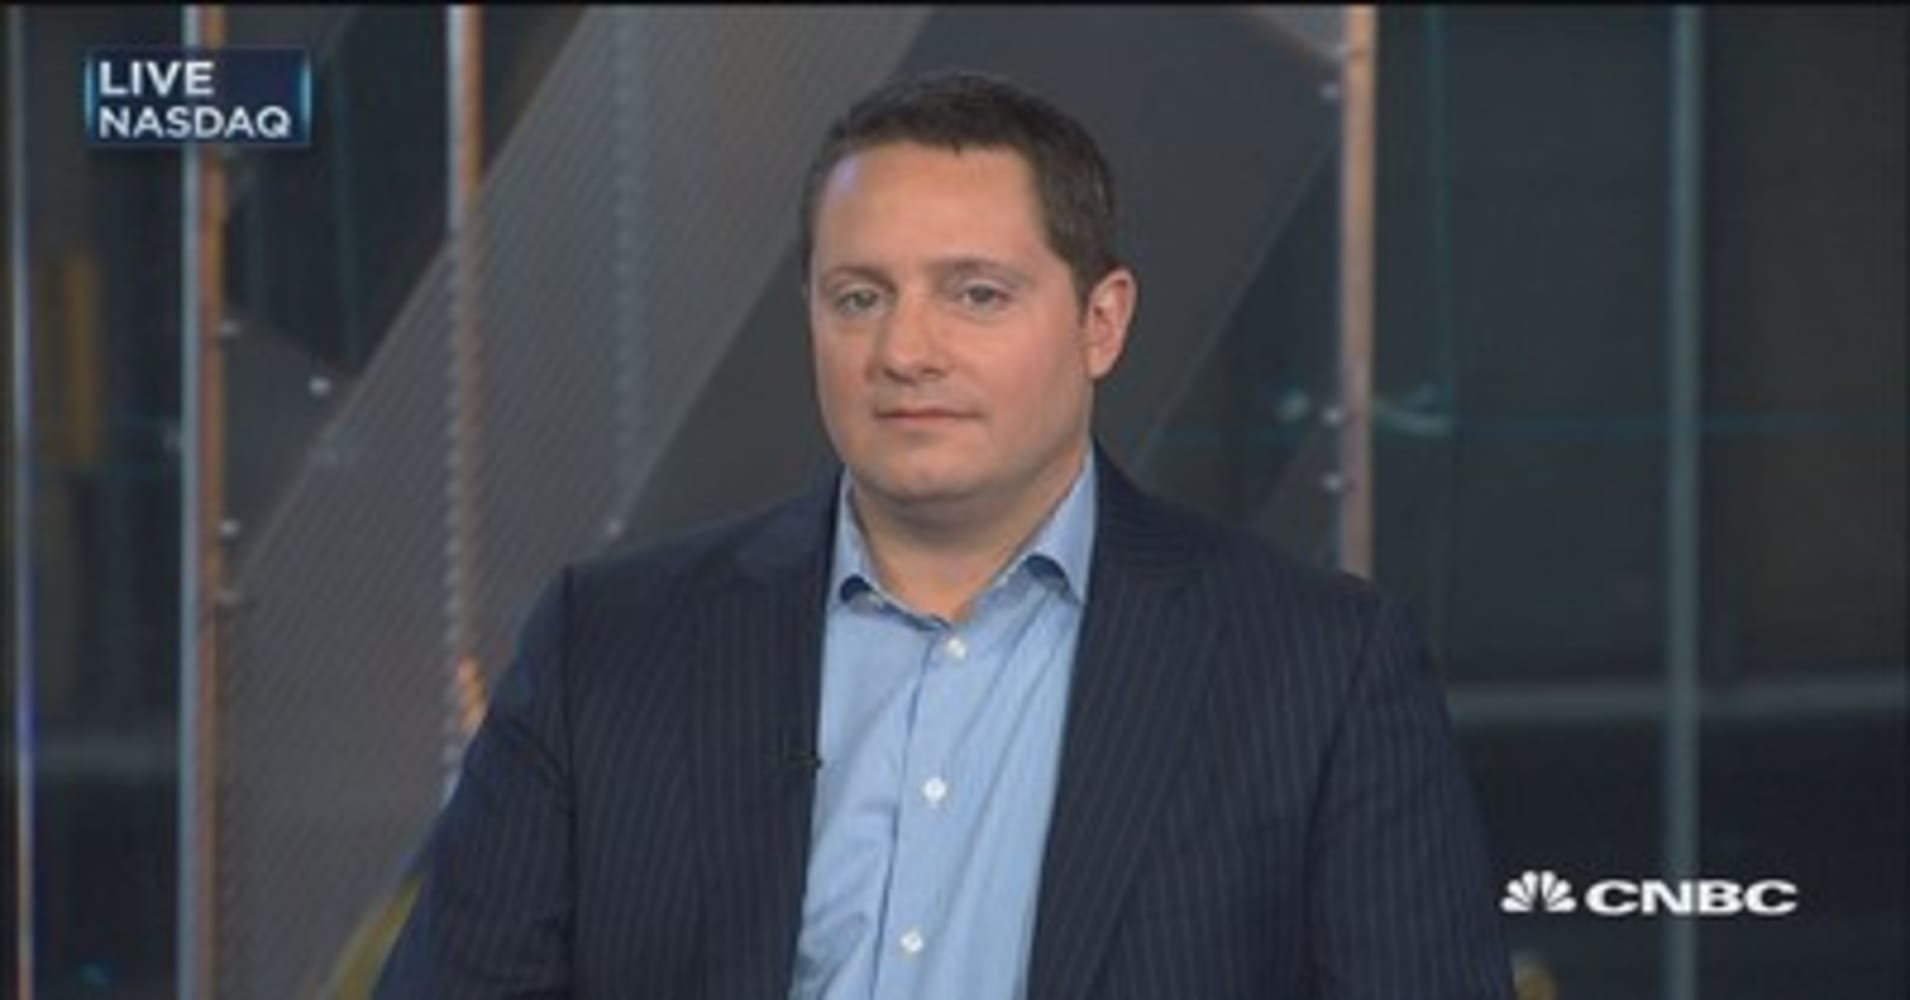 Muddy Waters' Carson Block on his investment strategy, state of short selling